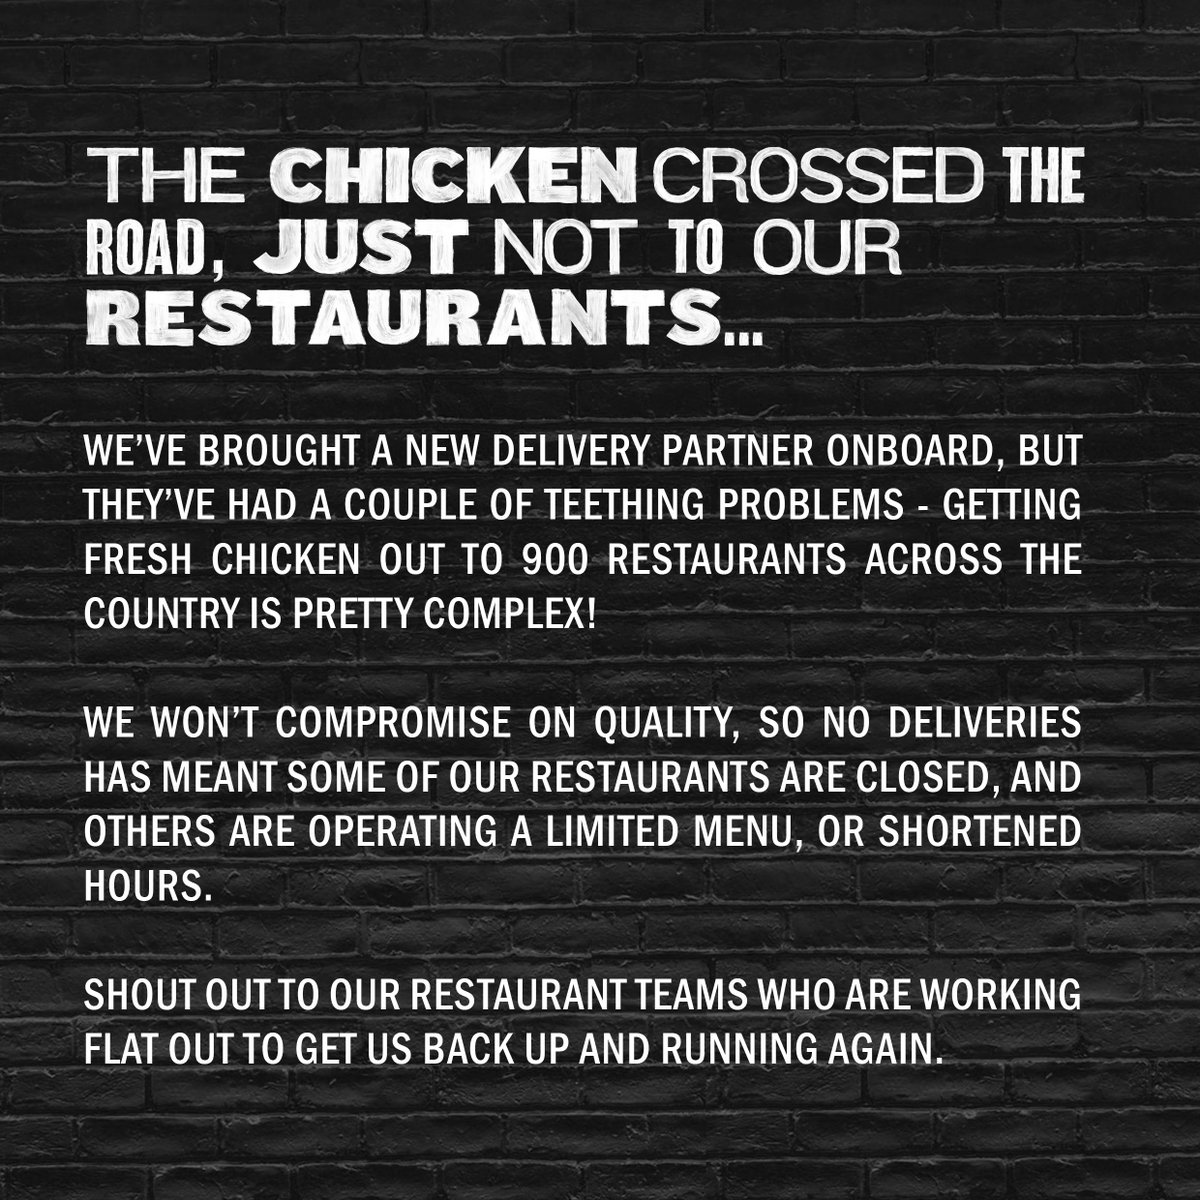 Most Kfcs In Uk Remain Closed Because Of Chicken Shortage Business 2 Way Switch Meaning Kfc Ireland Uki